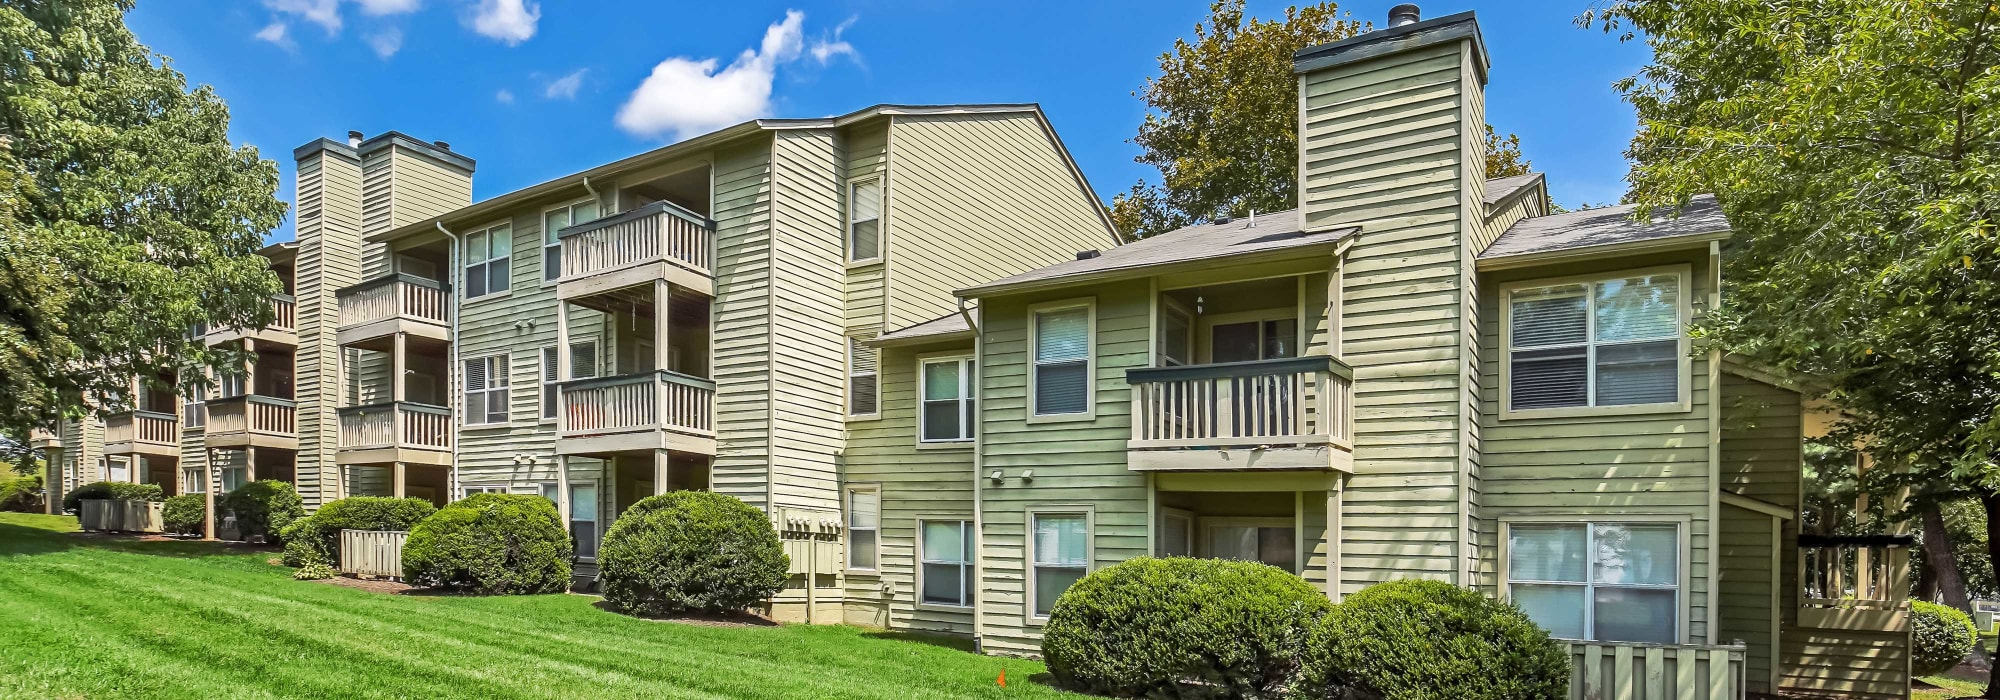 Beautiful apartments at Hunter's Chase Apartments in Midlothian, Virginia